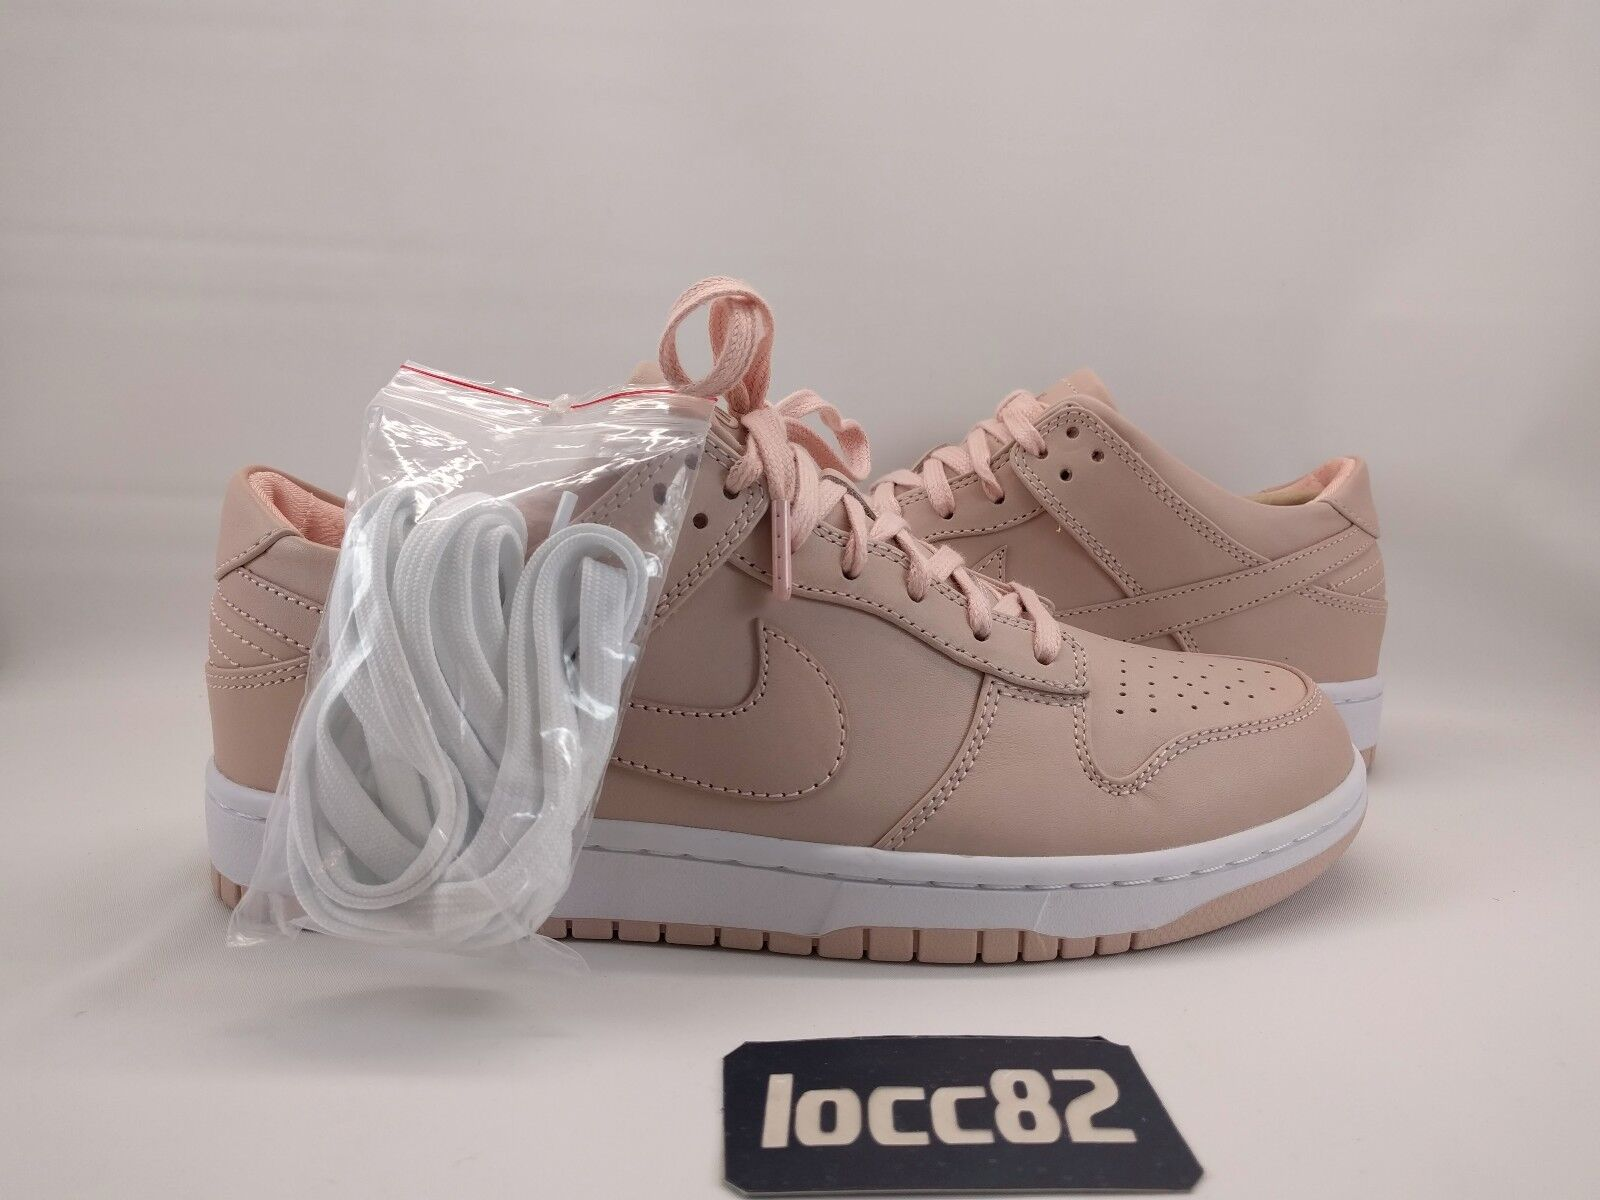 Nike Nikelab Dunk Lux Low Price reduction The most popular shoes for men and women